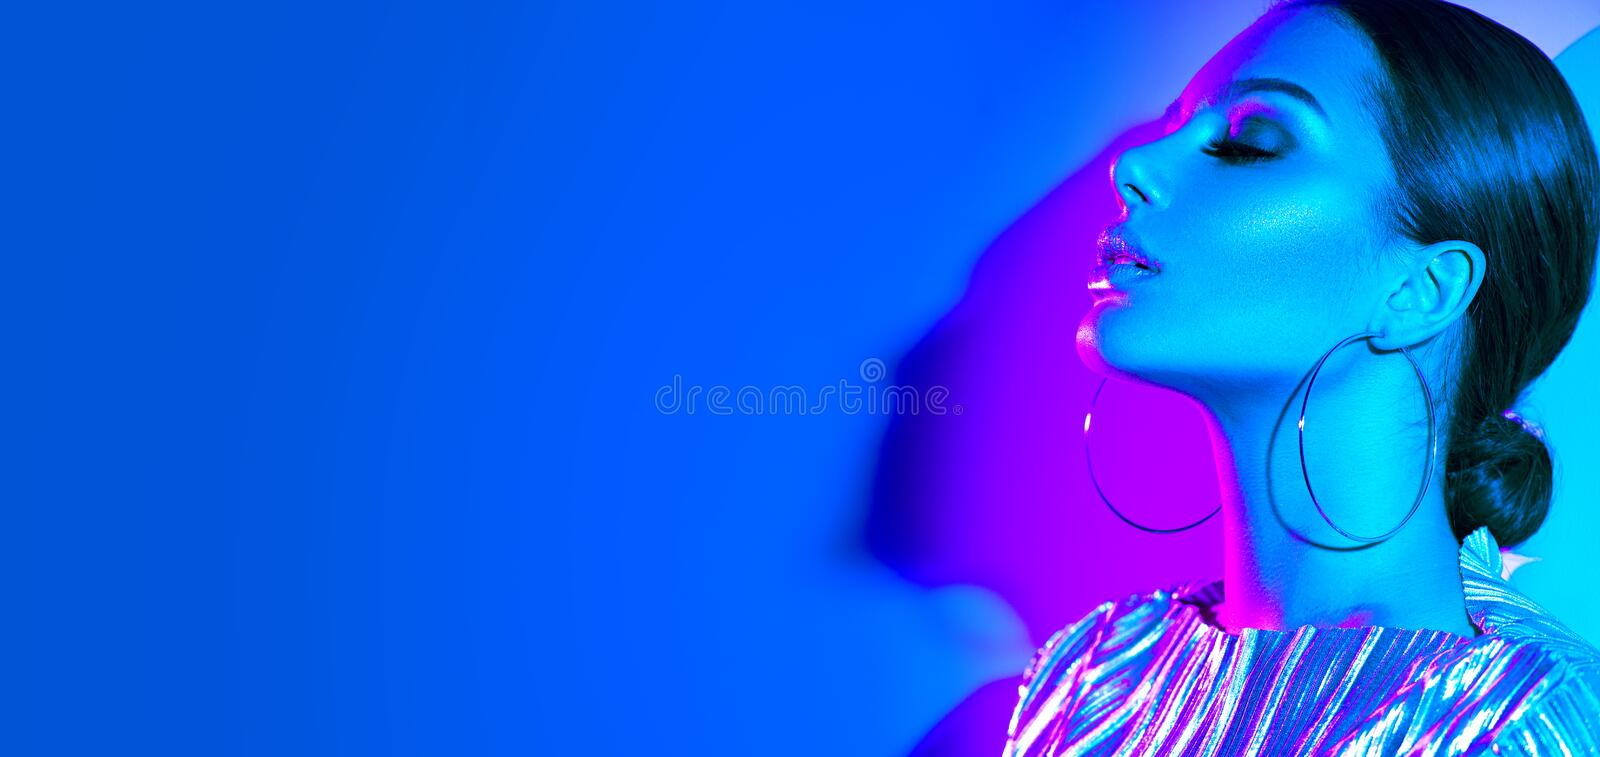 Fashion model brunette woman in colorful bright neon lights posing in studio. Beautiful girl, trendy glowing makeup stock images